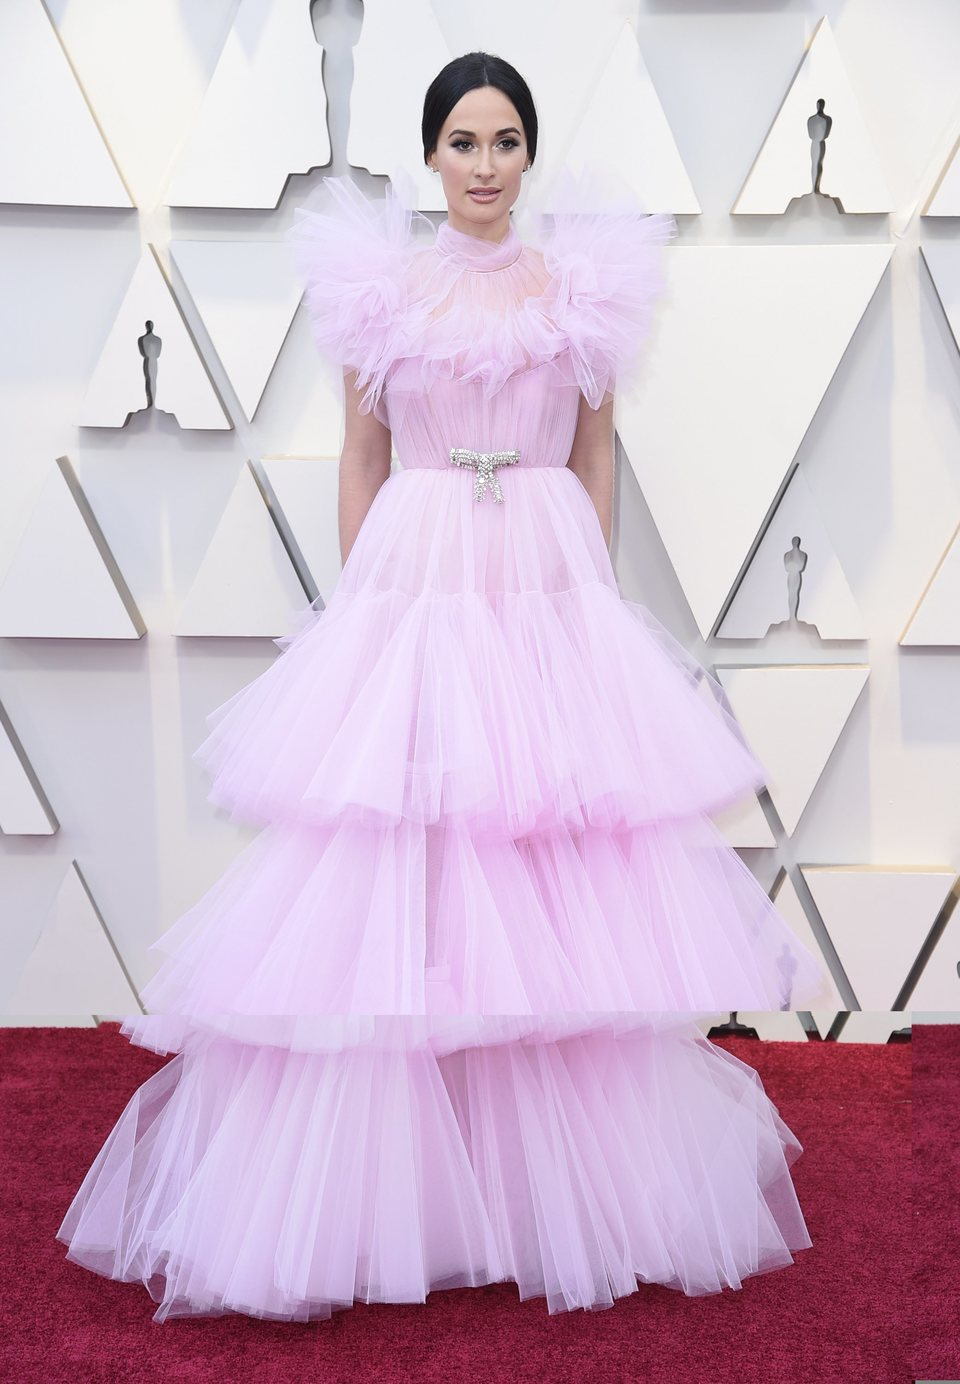 Kacey Musgraves on the red carpet at the 2019 Oscars